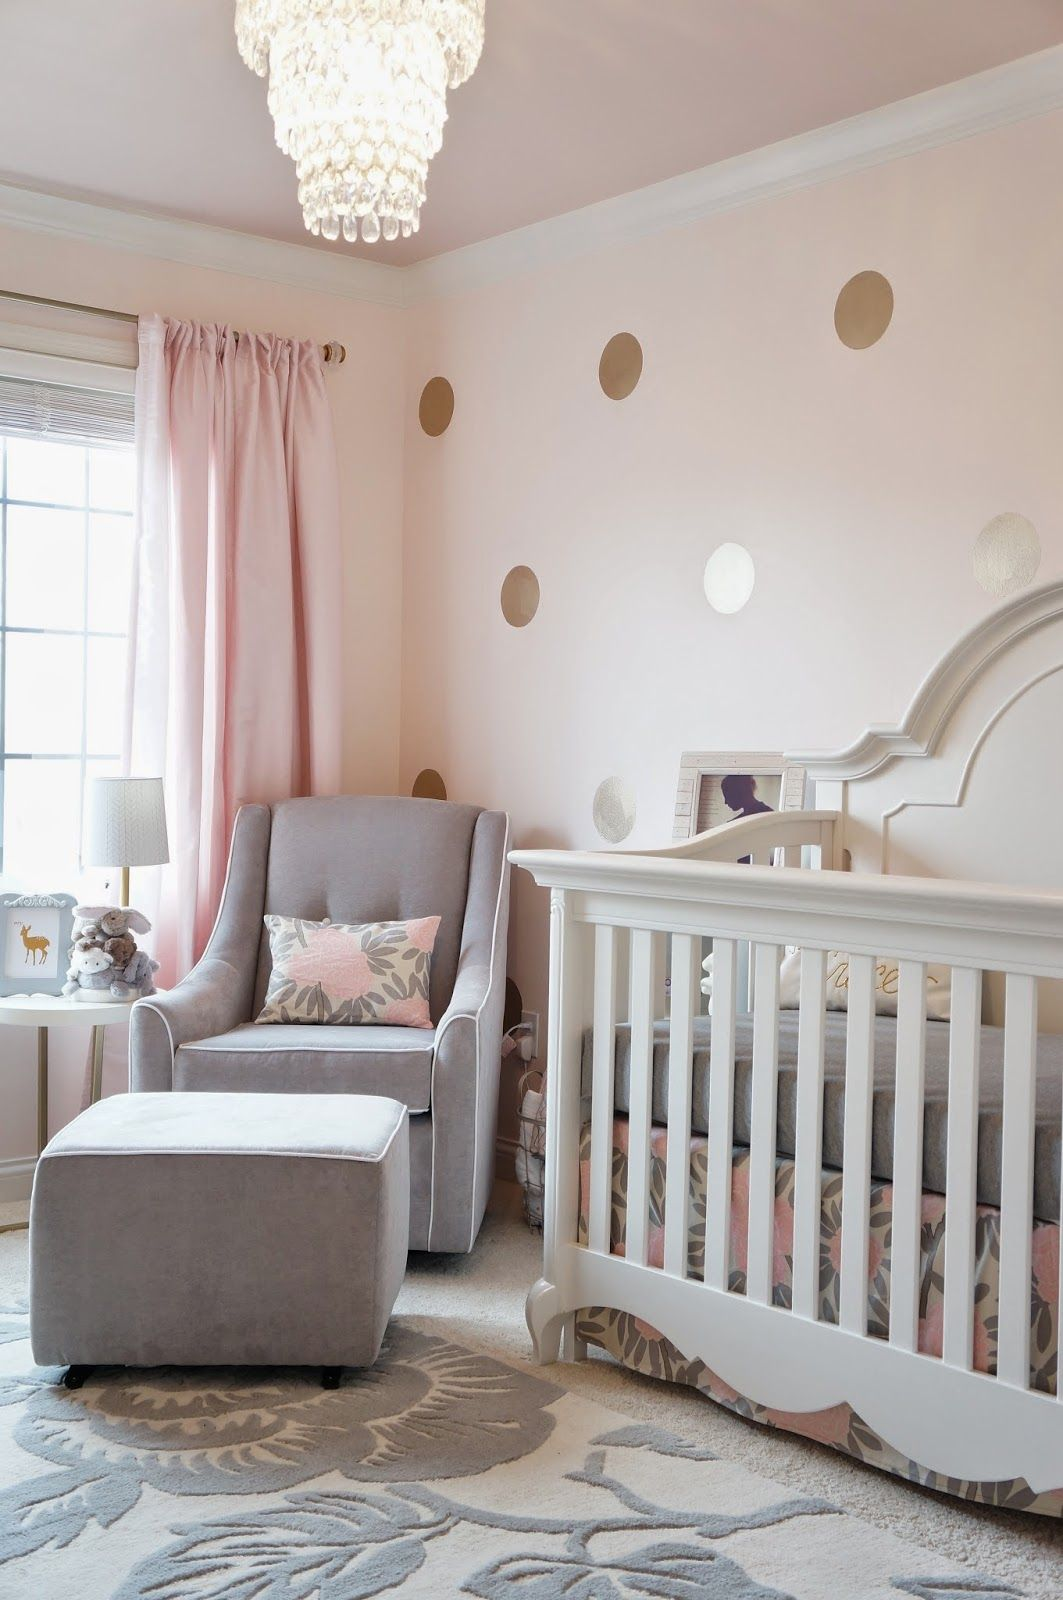 39 id es inspirations pour la d coration de la chambre b b photos pink grey house for Idee deco slaapkamer baby meisje